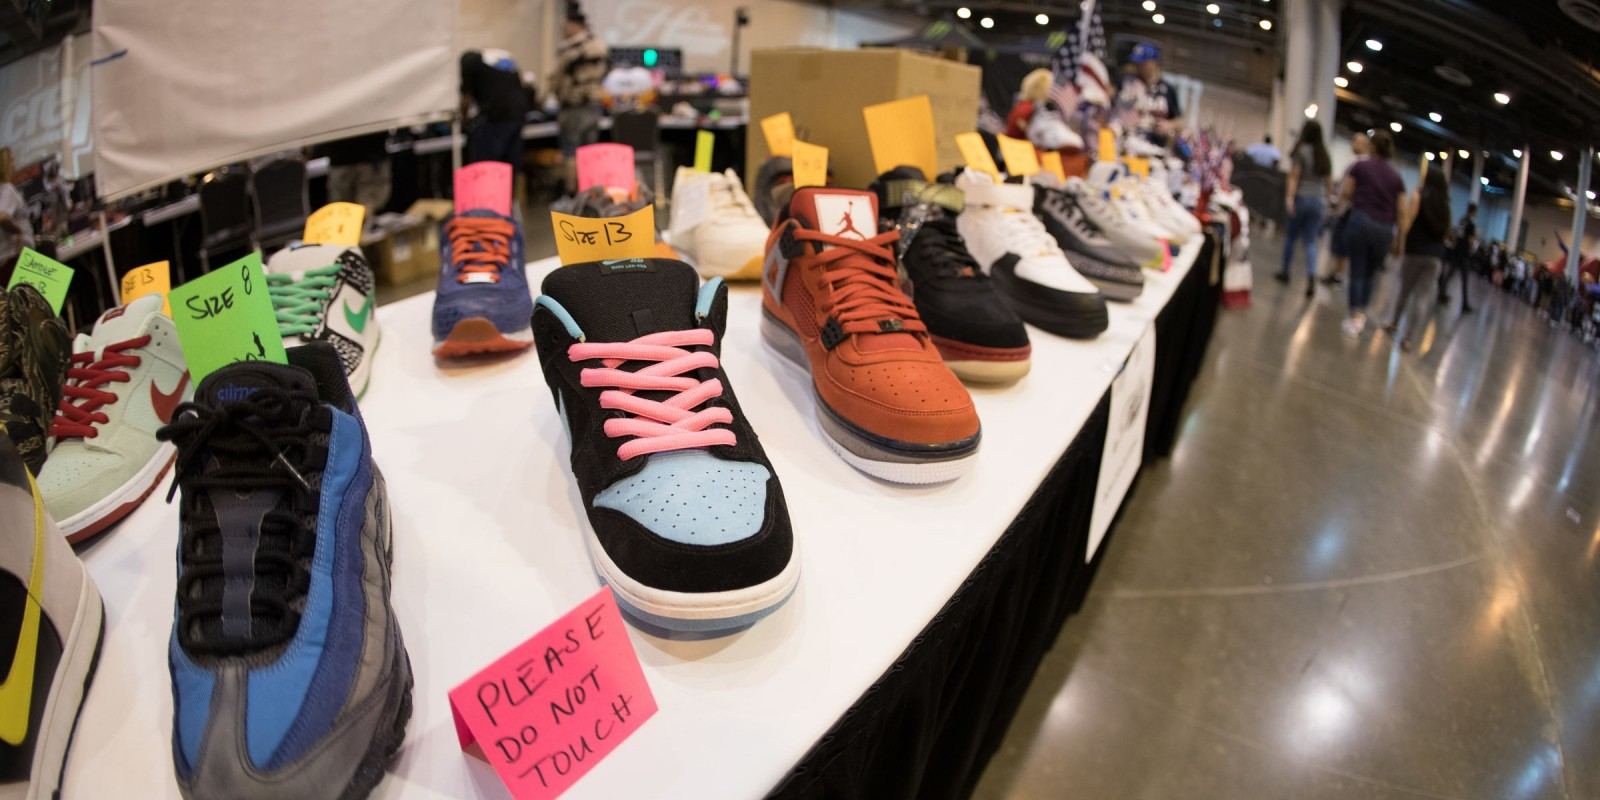 H-Town Sneaker Summit returns to the historic NRG Center in Houston, Texas for their highly anticipated 13th annual summer event